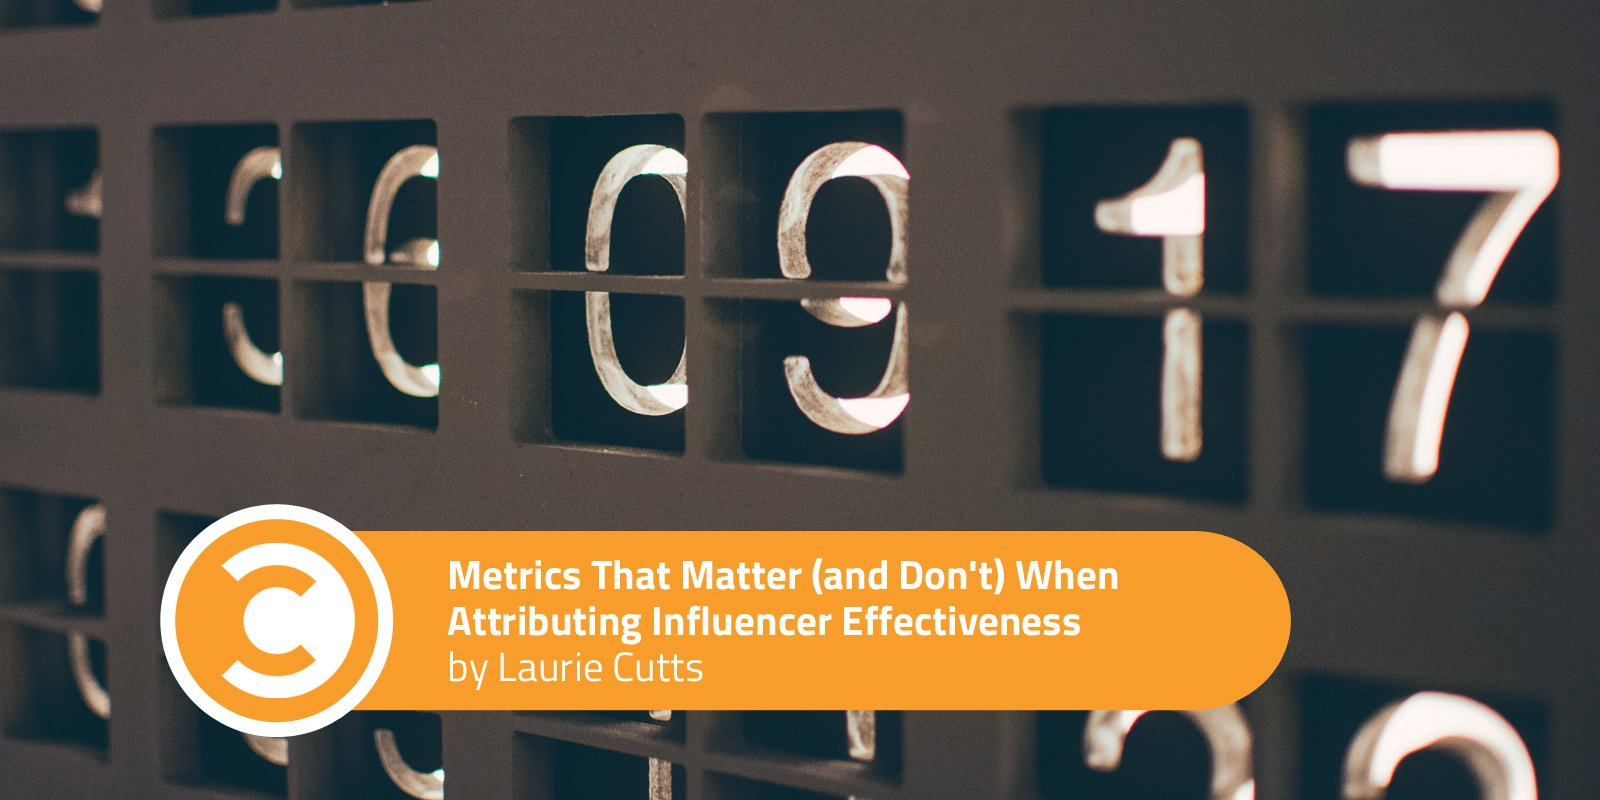 Metrics That Matter (and Don't) When Attributing Influencer Effectiveness